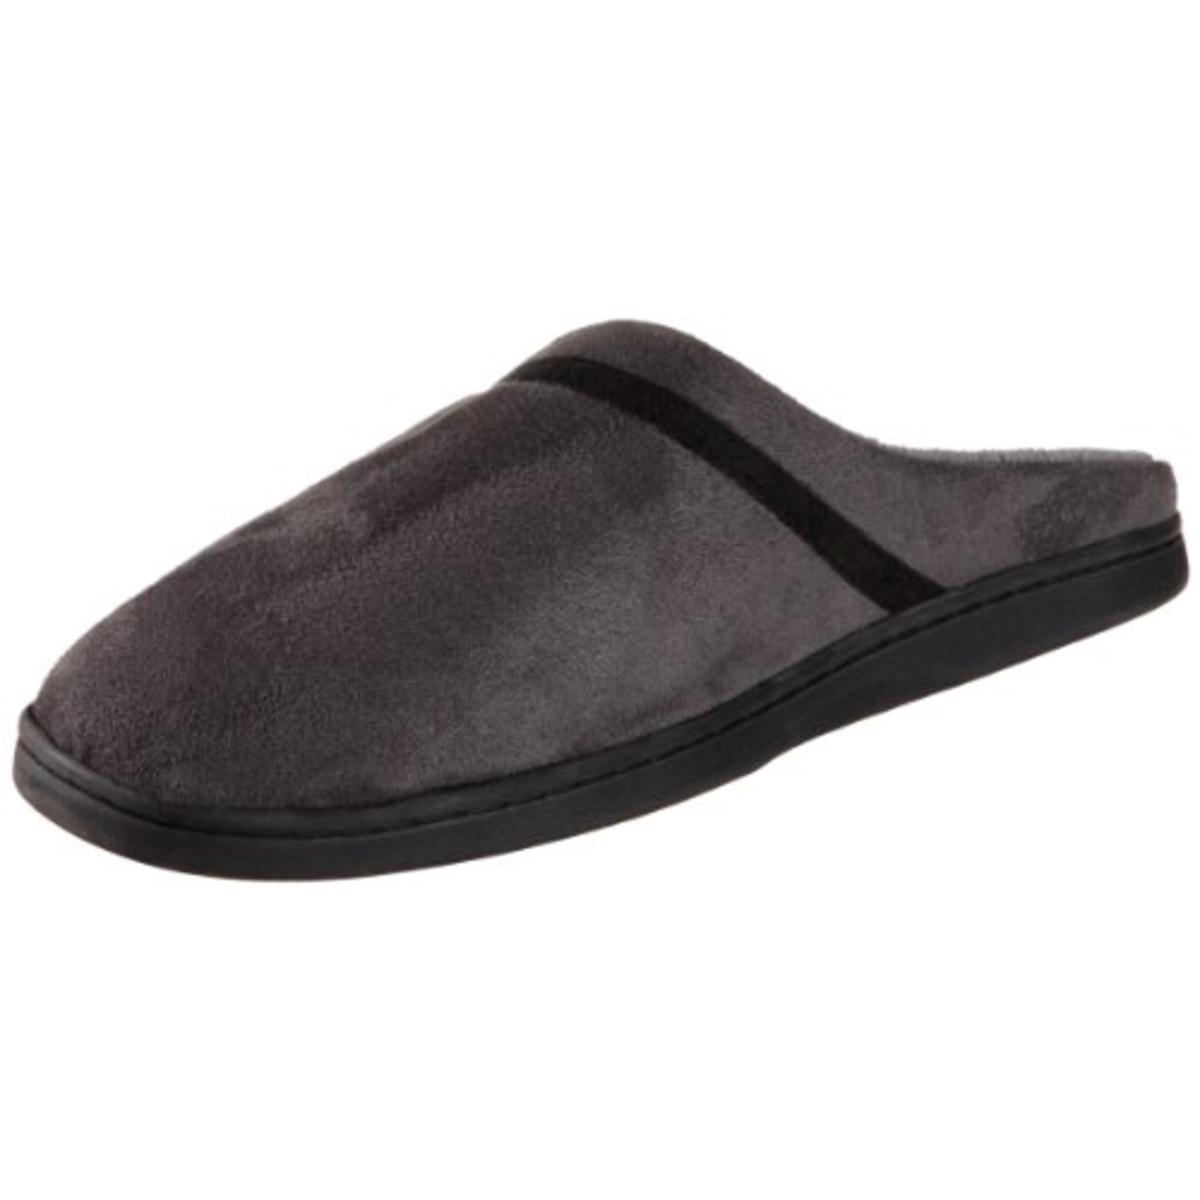 Dockers Mens Microsuede Comfort Insoles Clog Slippers by Dockers